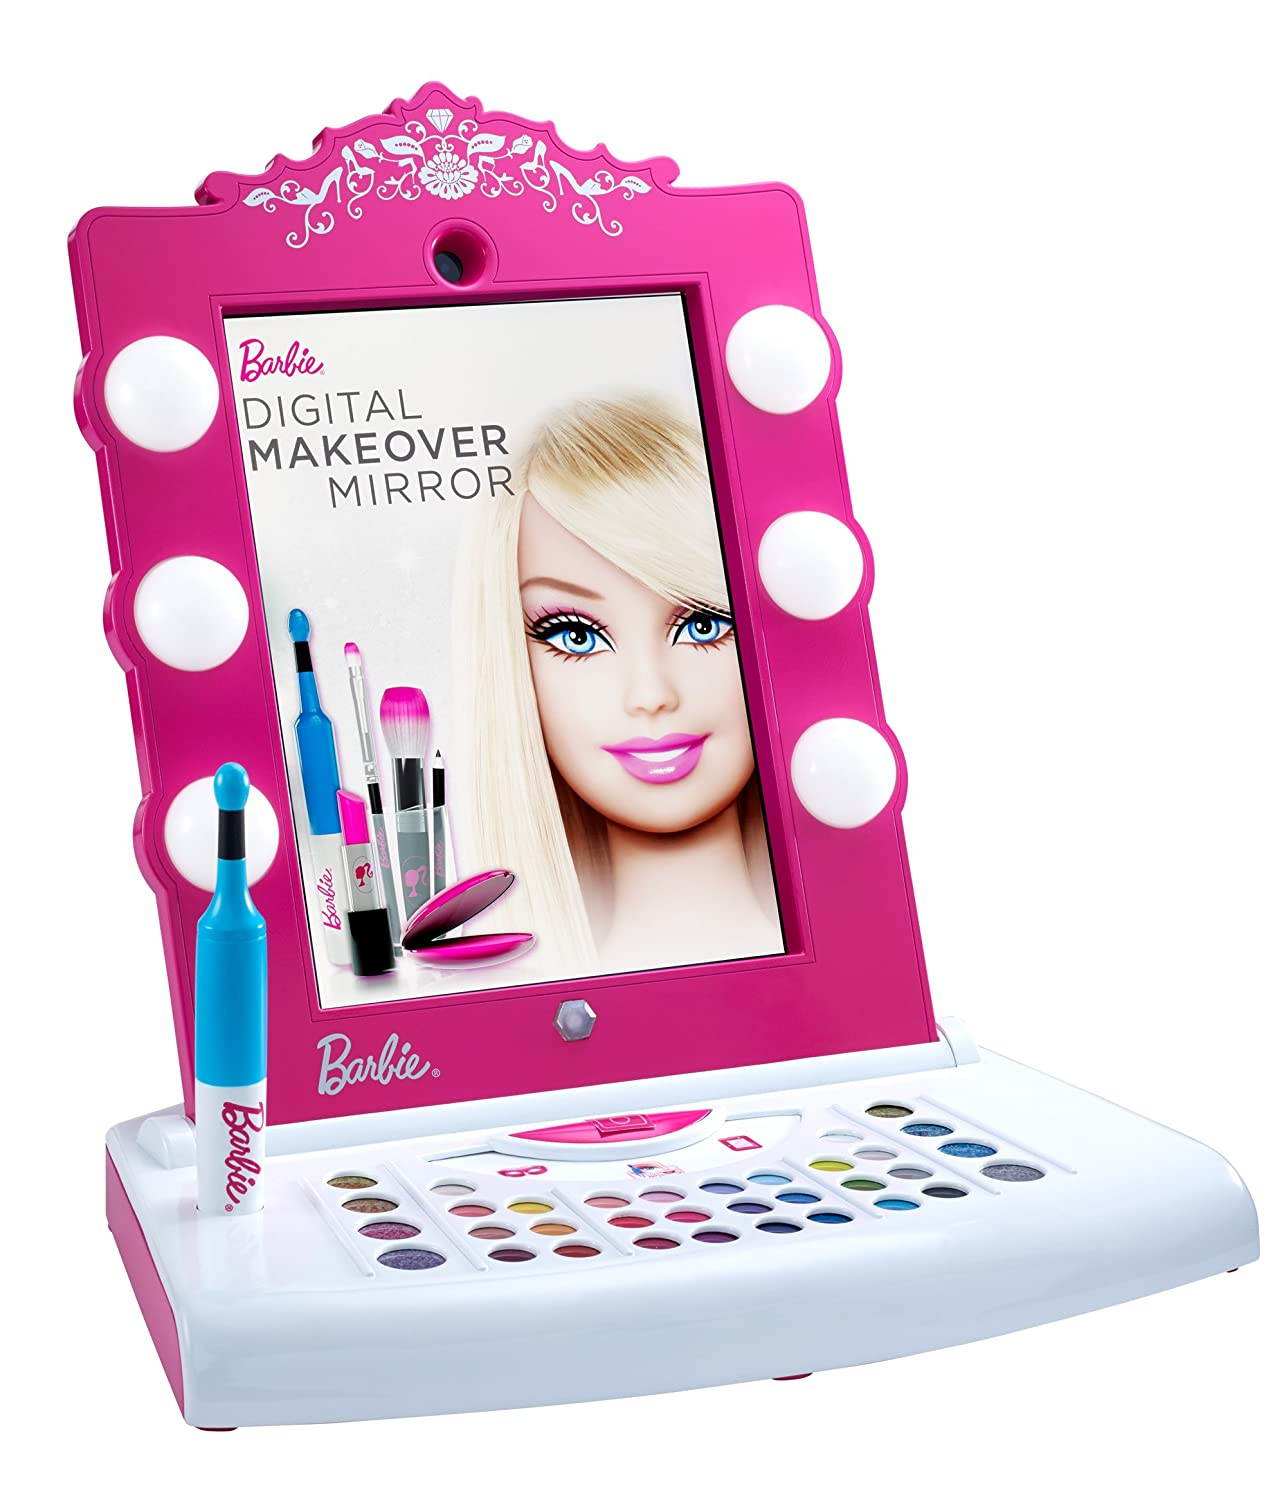 amazon com barbie digital makeover mirror toys u0026 games